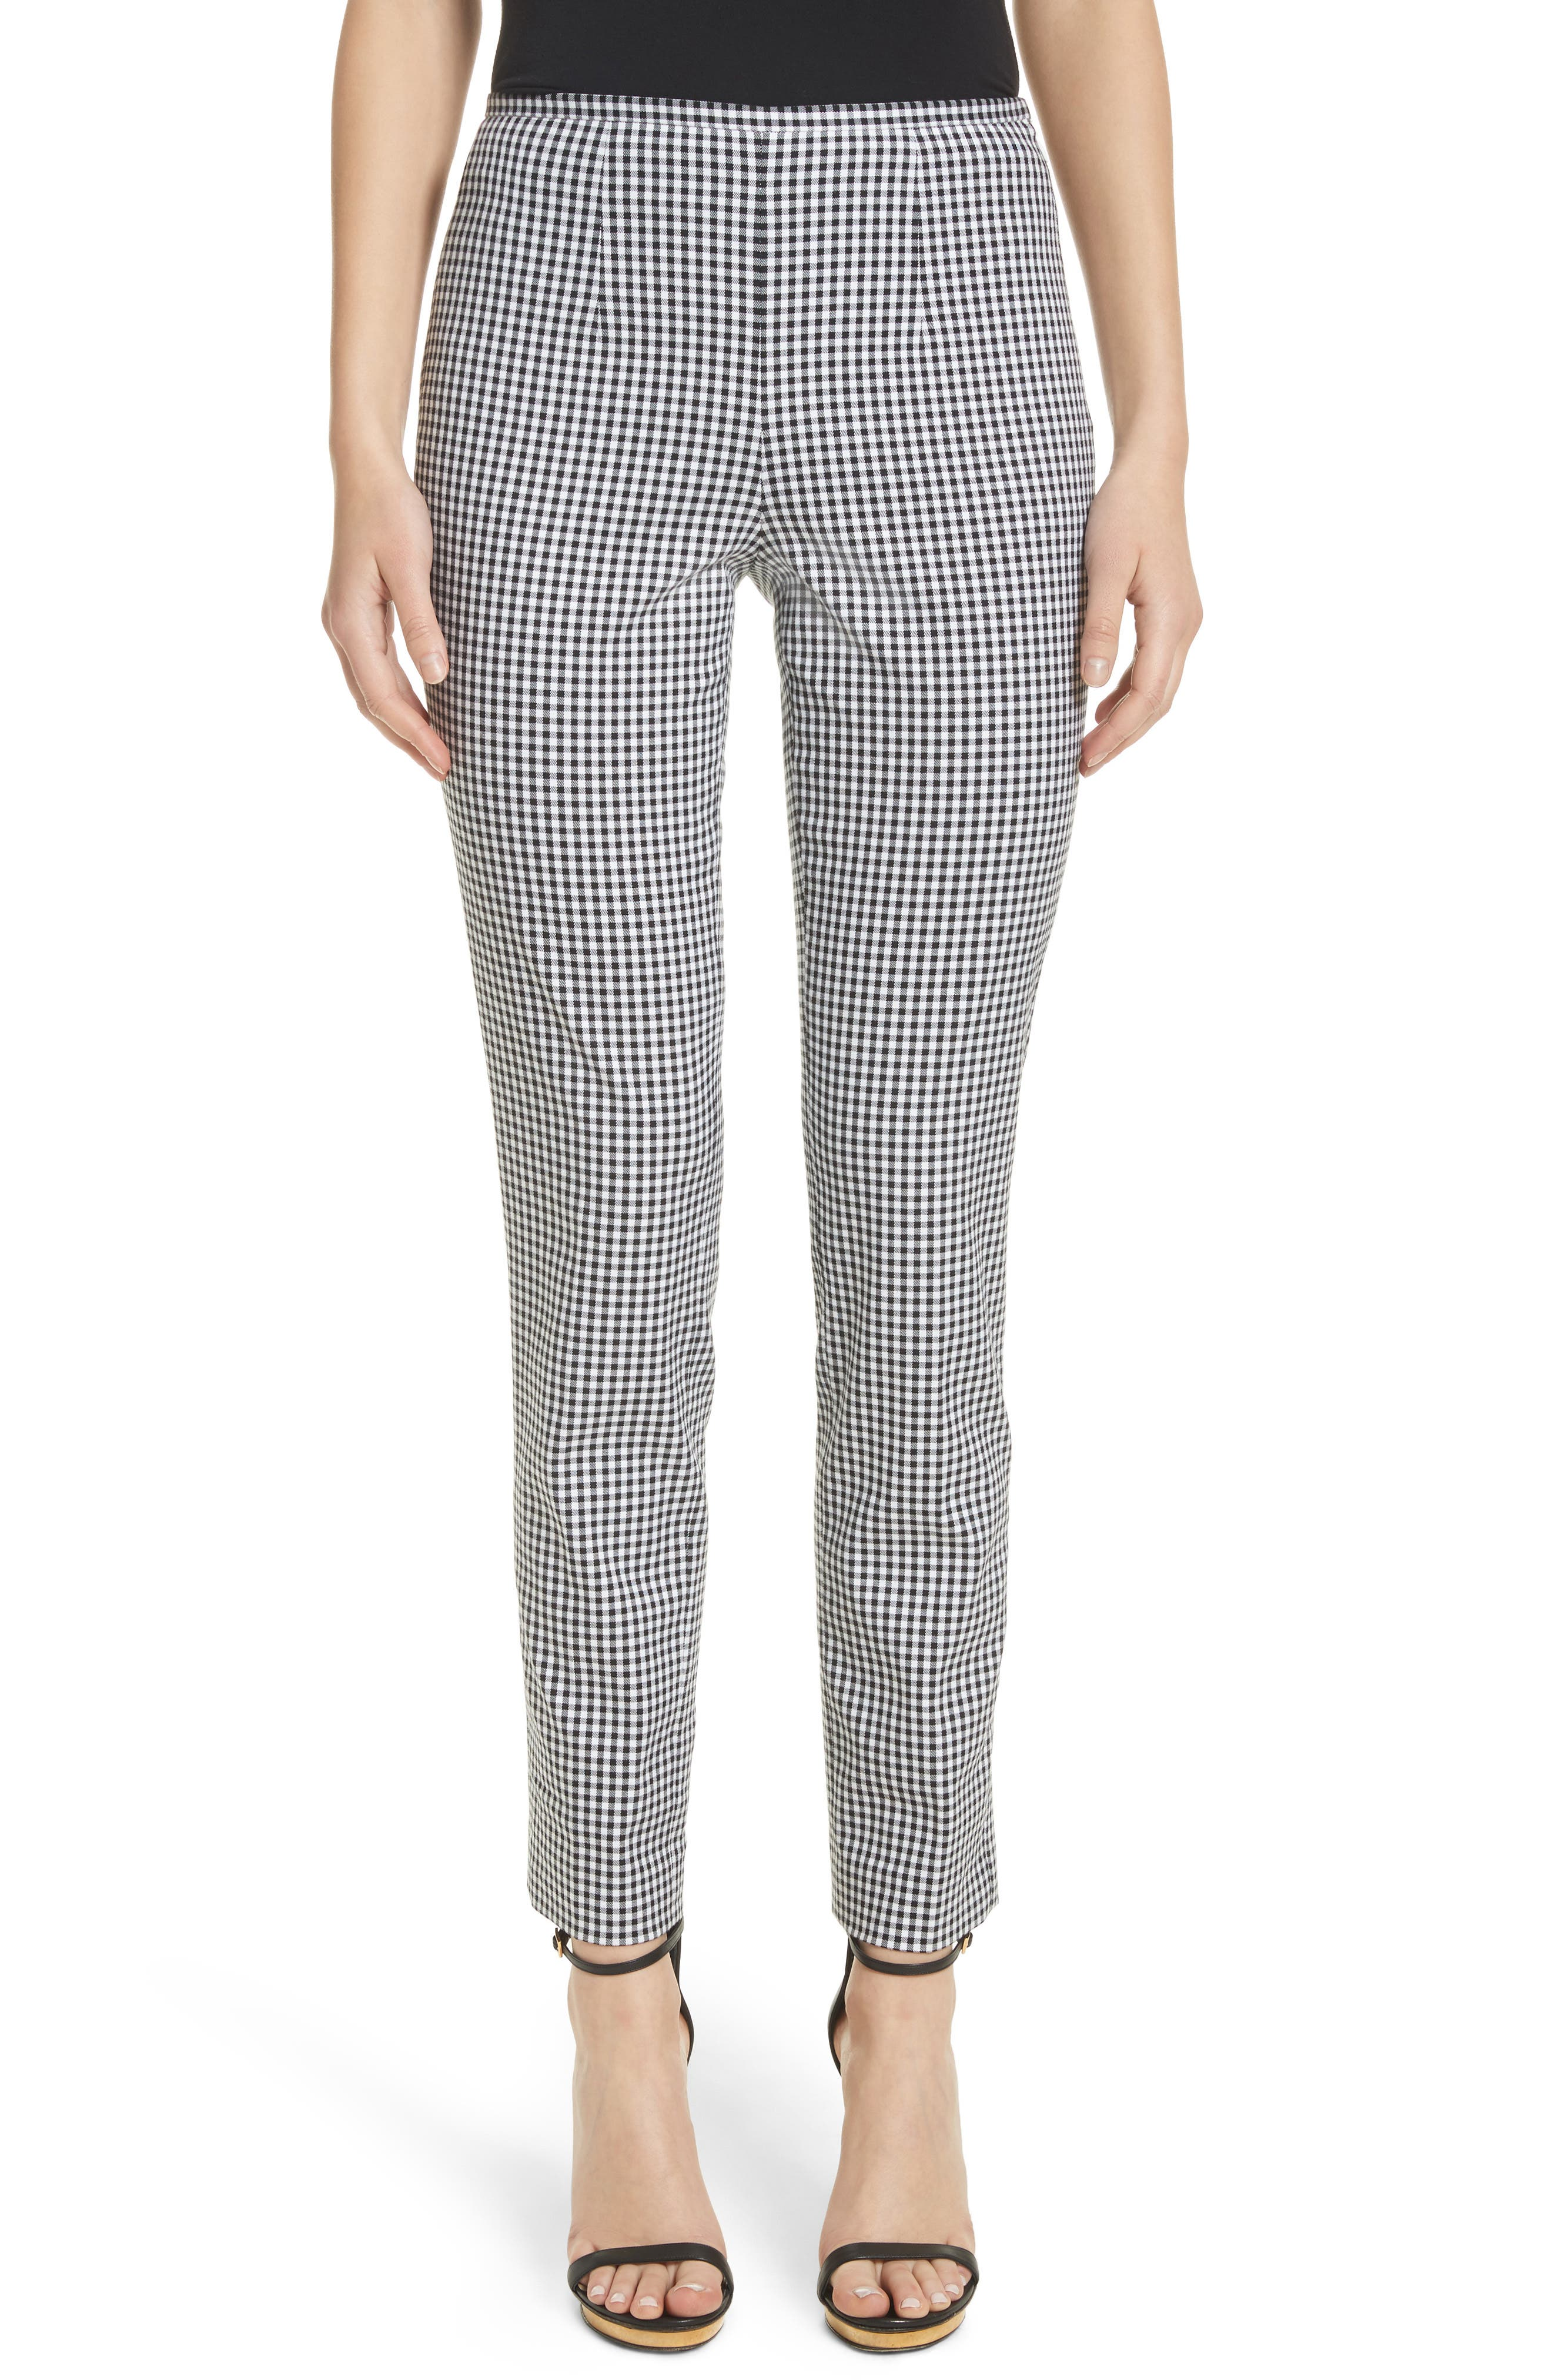 Gingham Stretch Cotton Pants,                         Main,                         color, Black / White